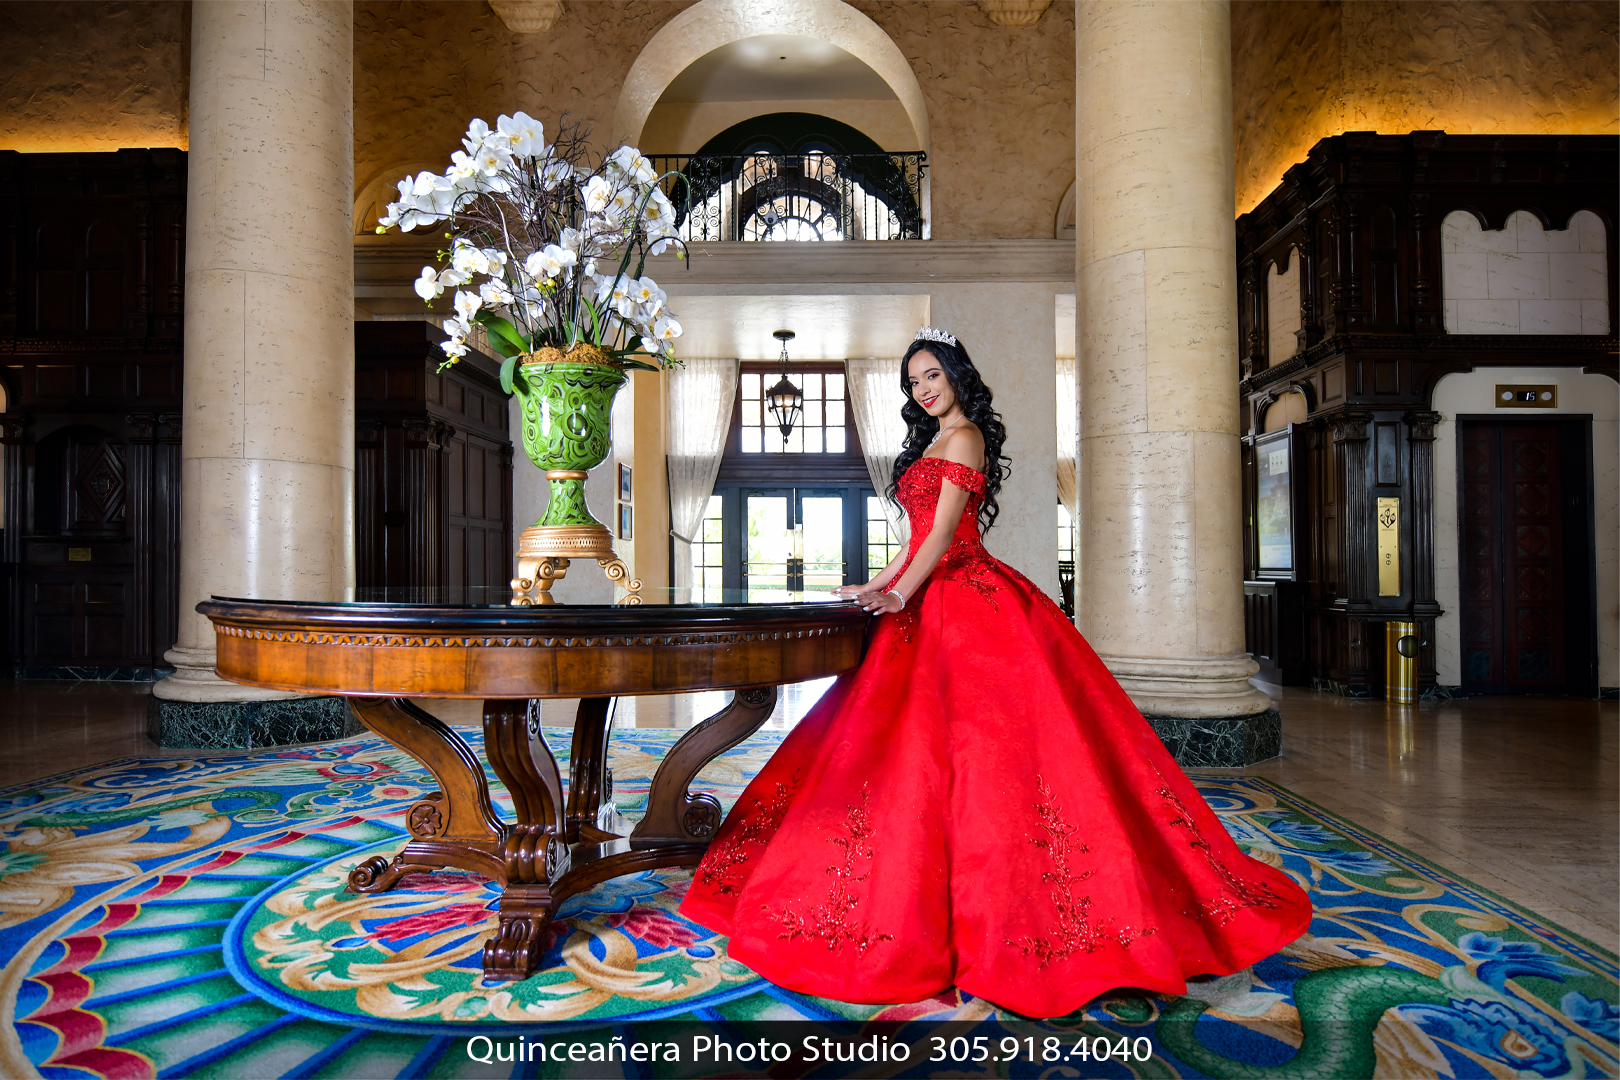 Quinceañera at the Biltmore Hotel in a red dress, Photo by Quinceanera photo studio (305) 918-4040